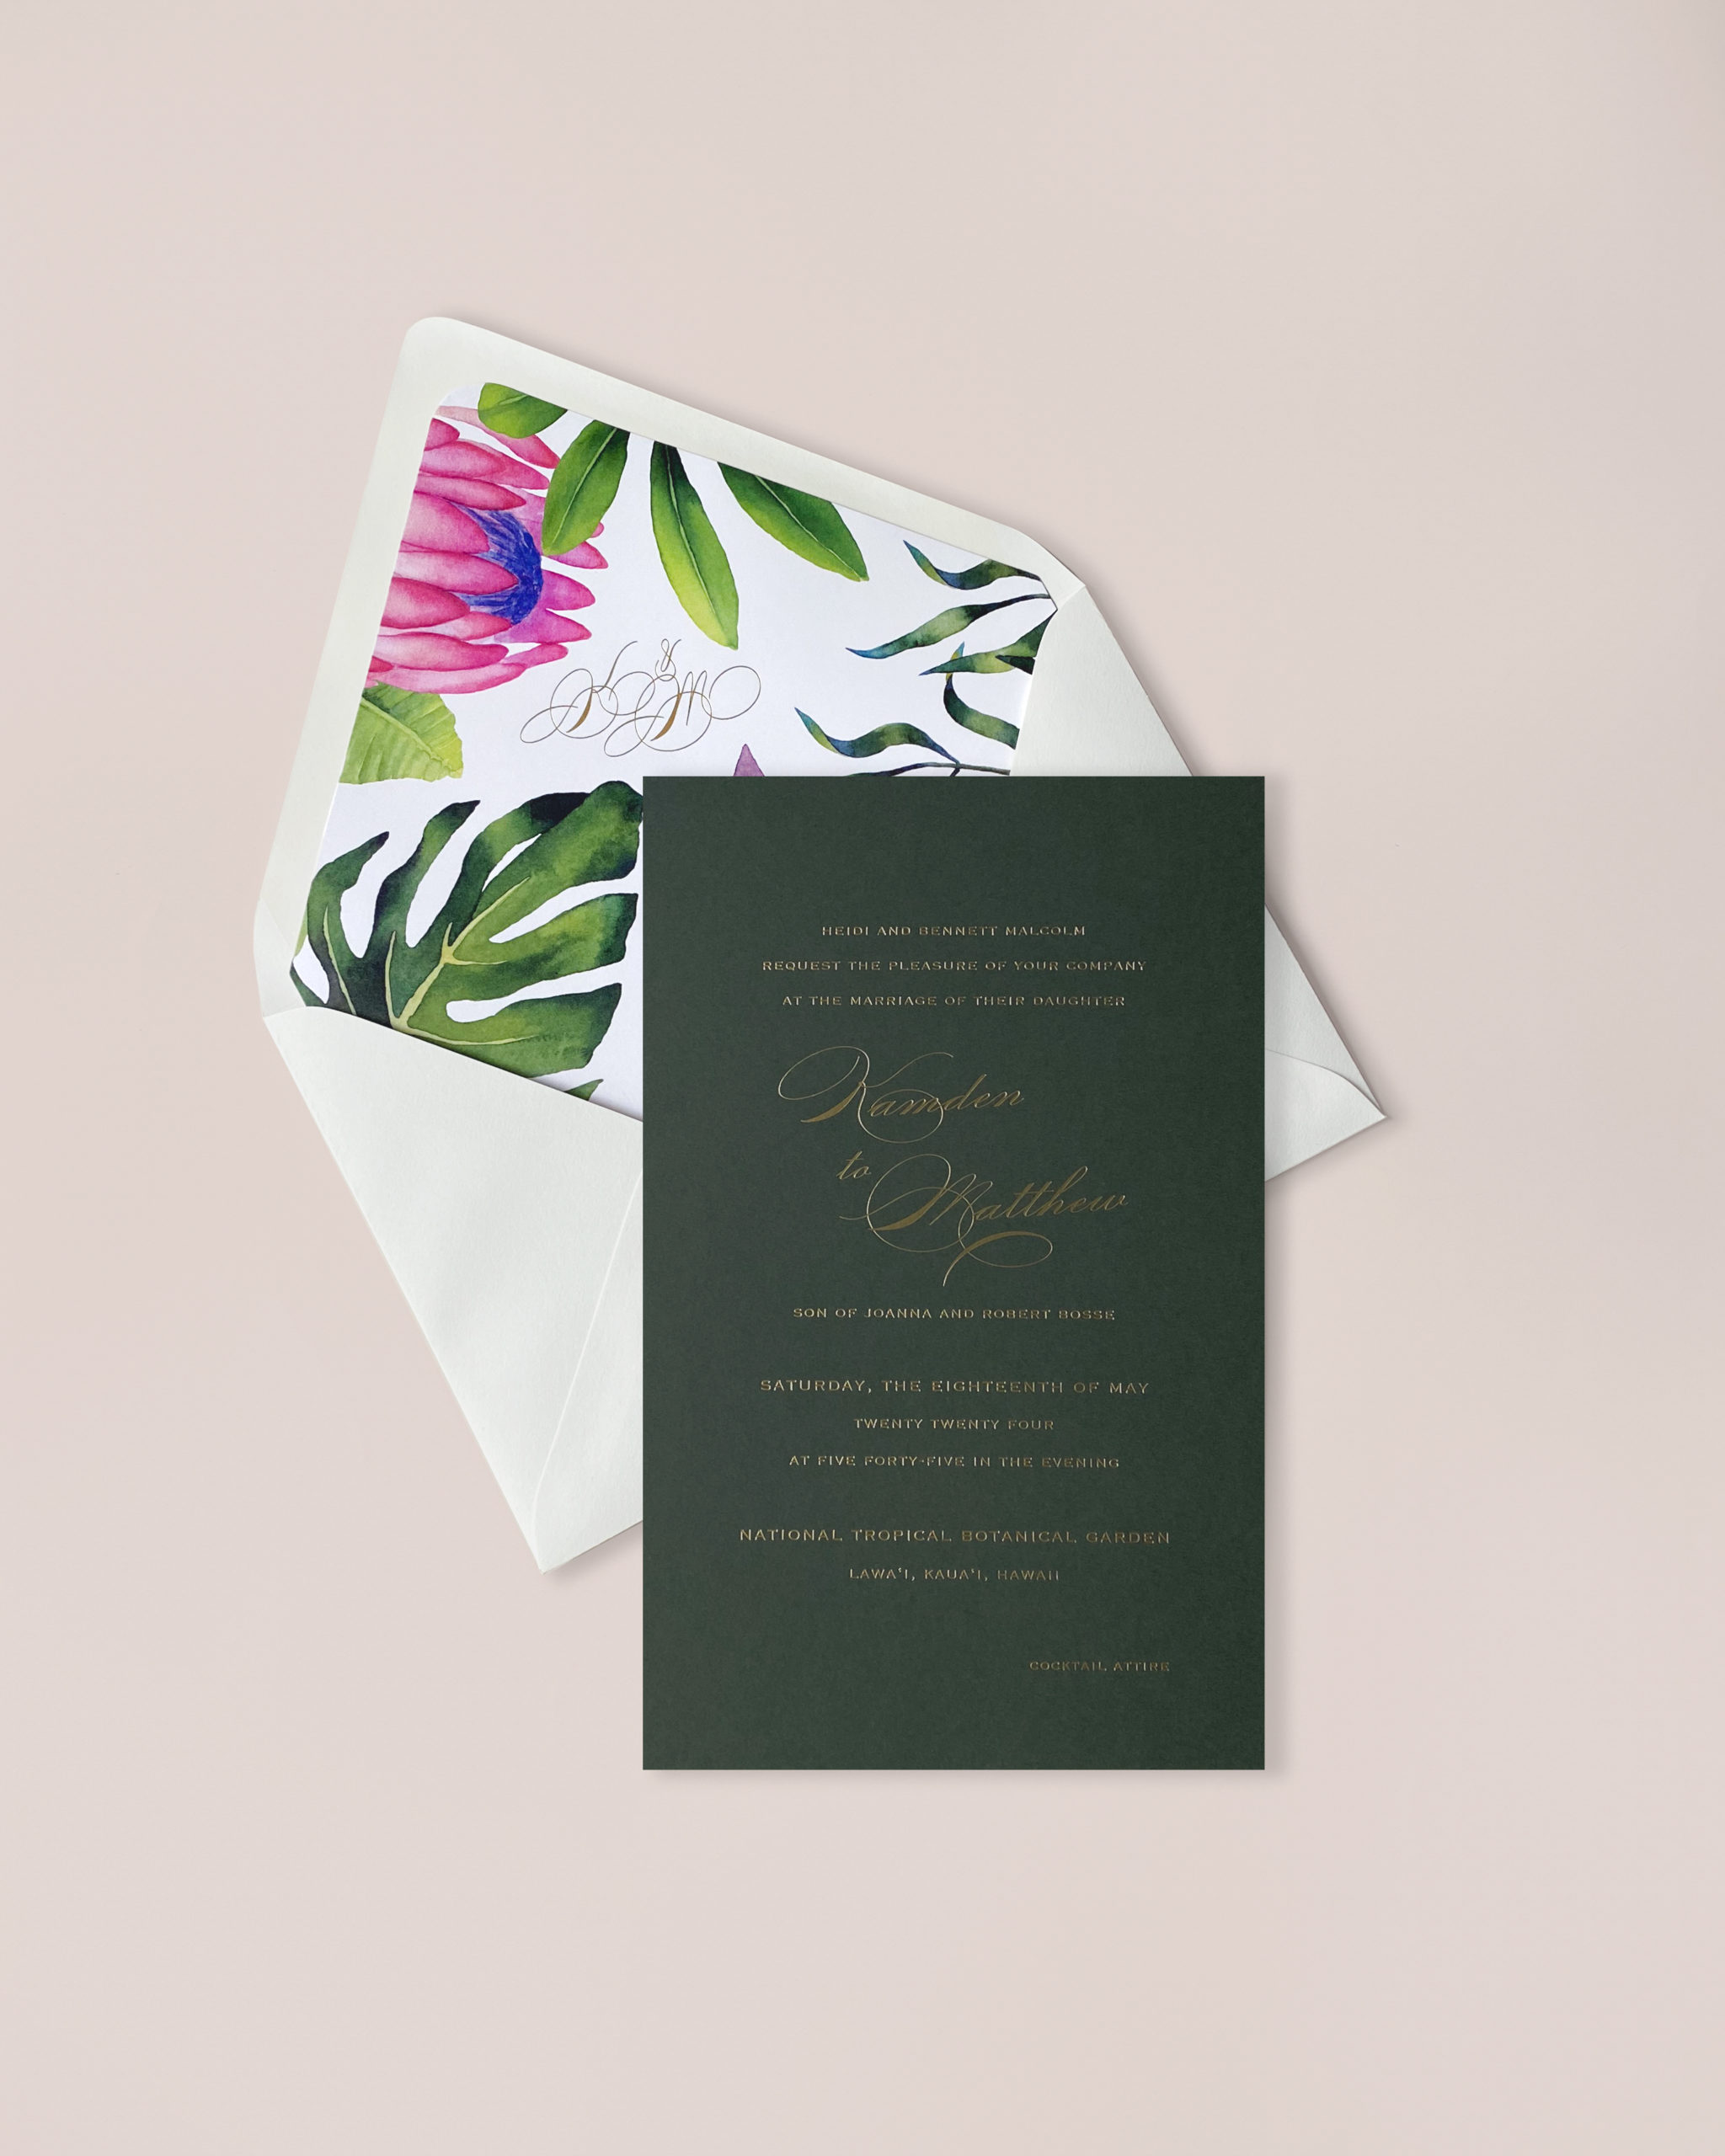 tropical botanical envelope liner is the perfect accent to this dramatic green wedding invitation with foil stamped text.  smitten on paper wedding collections are available in the DC metro area at Staccato.